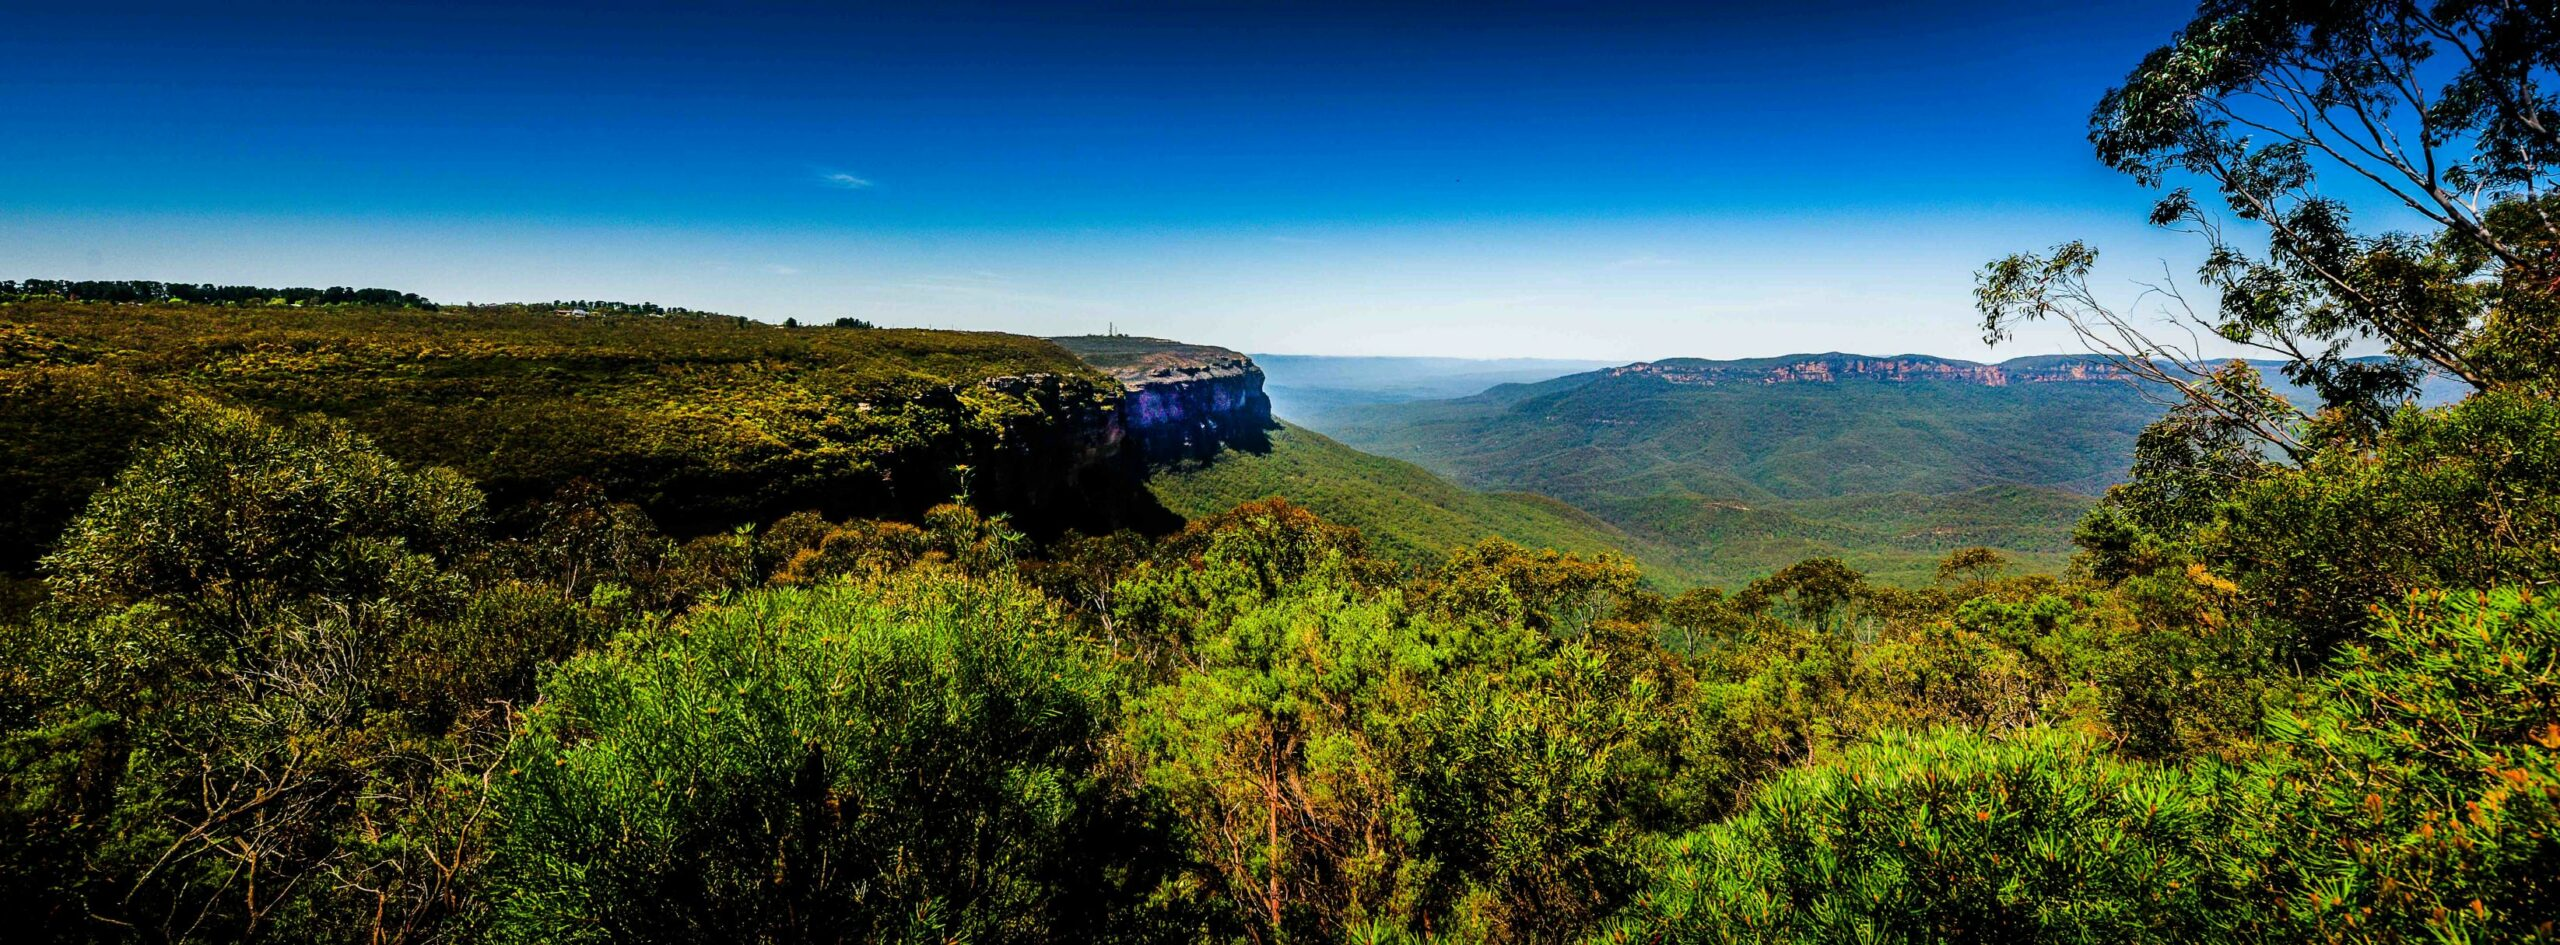 Blue Mountains Luxury Private Charter with Echoes Lunch